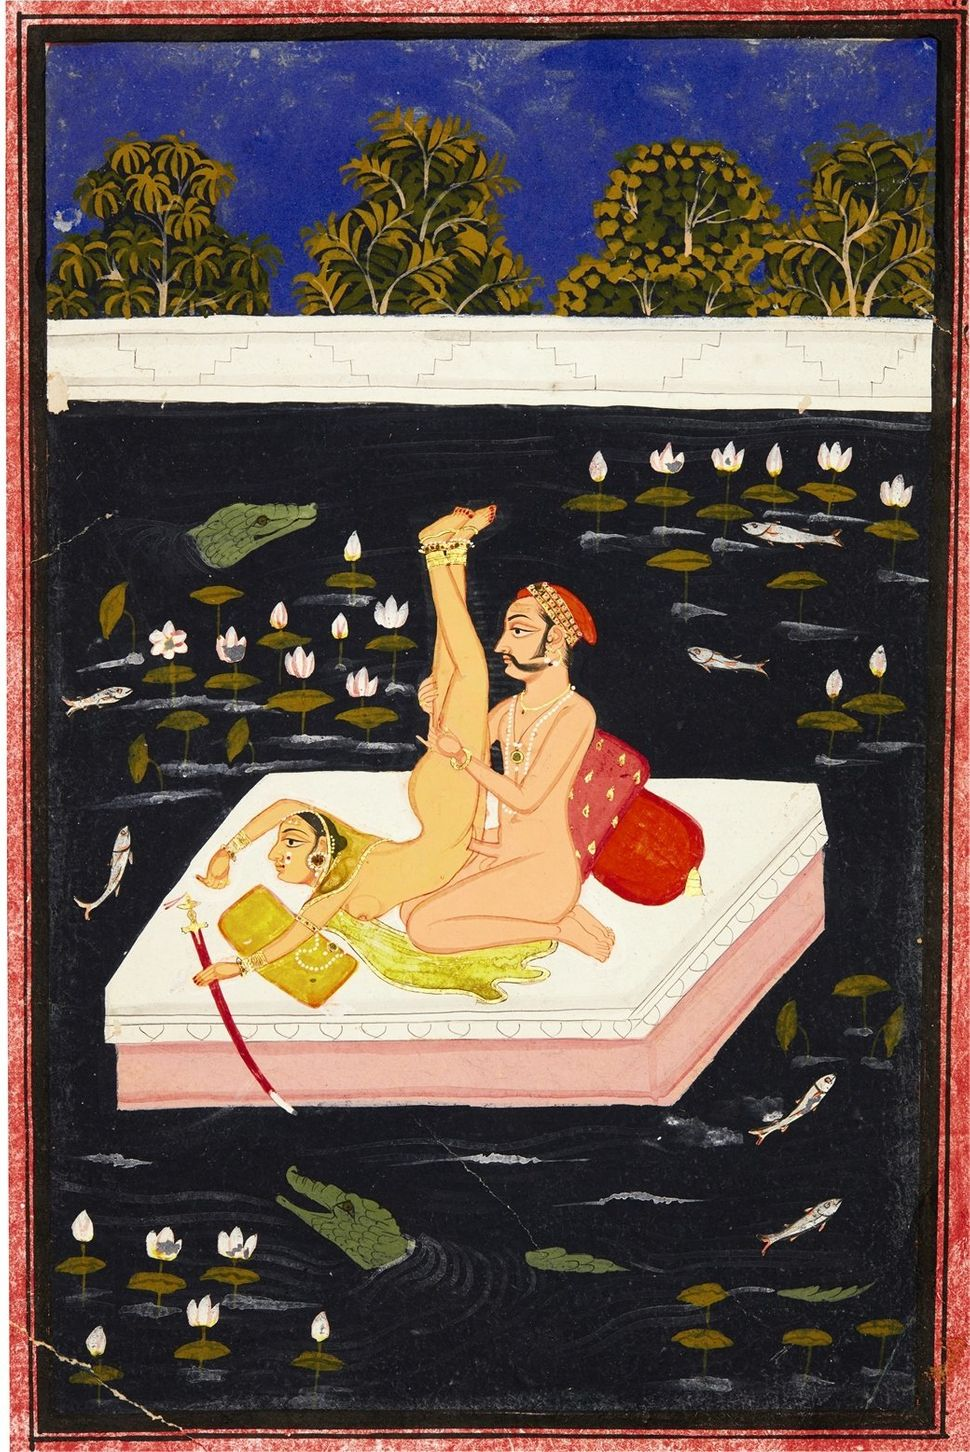 A couple making acrobatic love on a lake, Mewar, North India, 18th century. (Est. £2,000 to £3,000.)